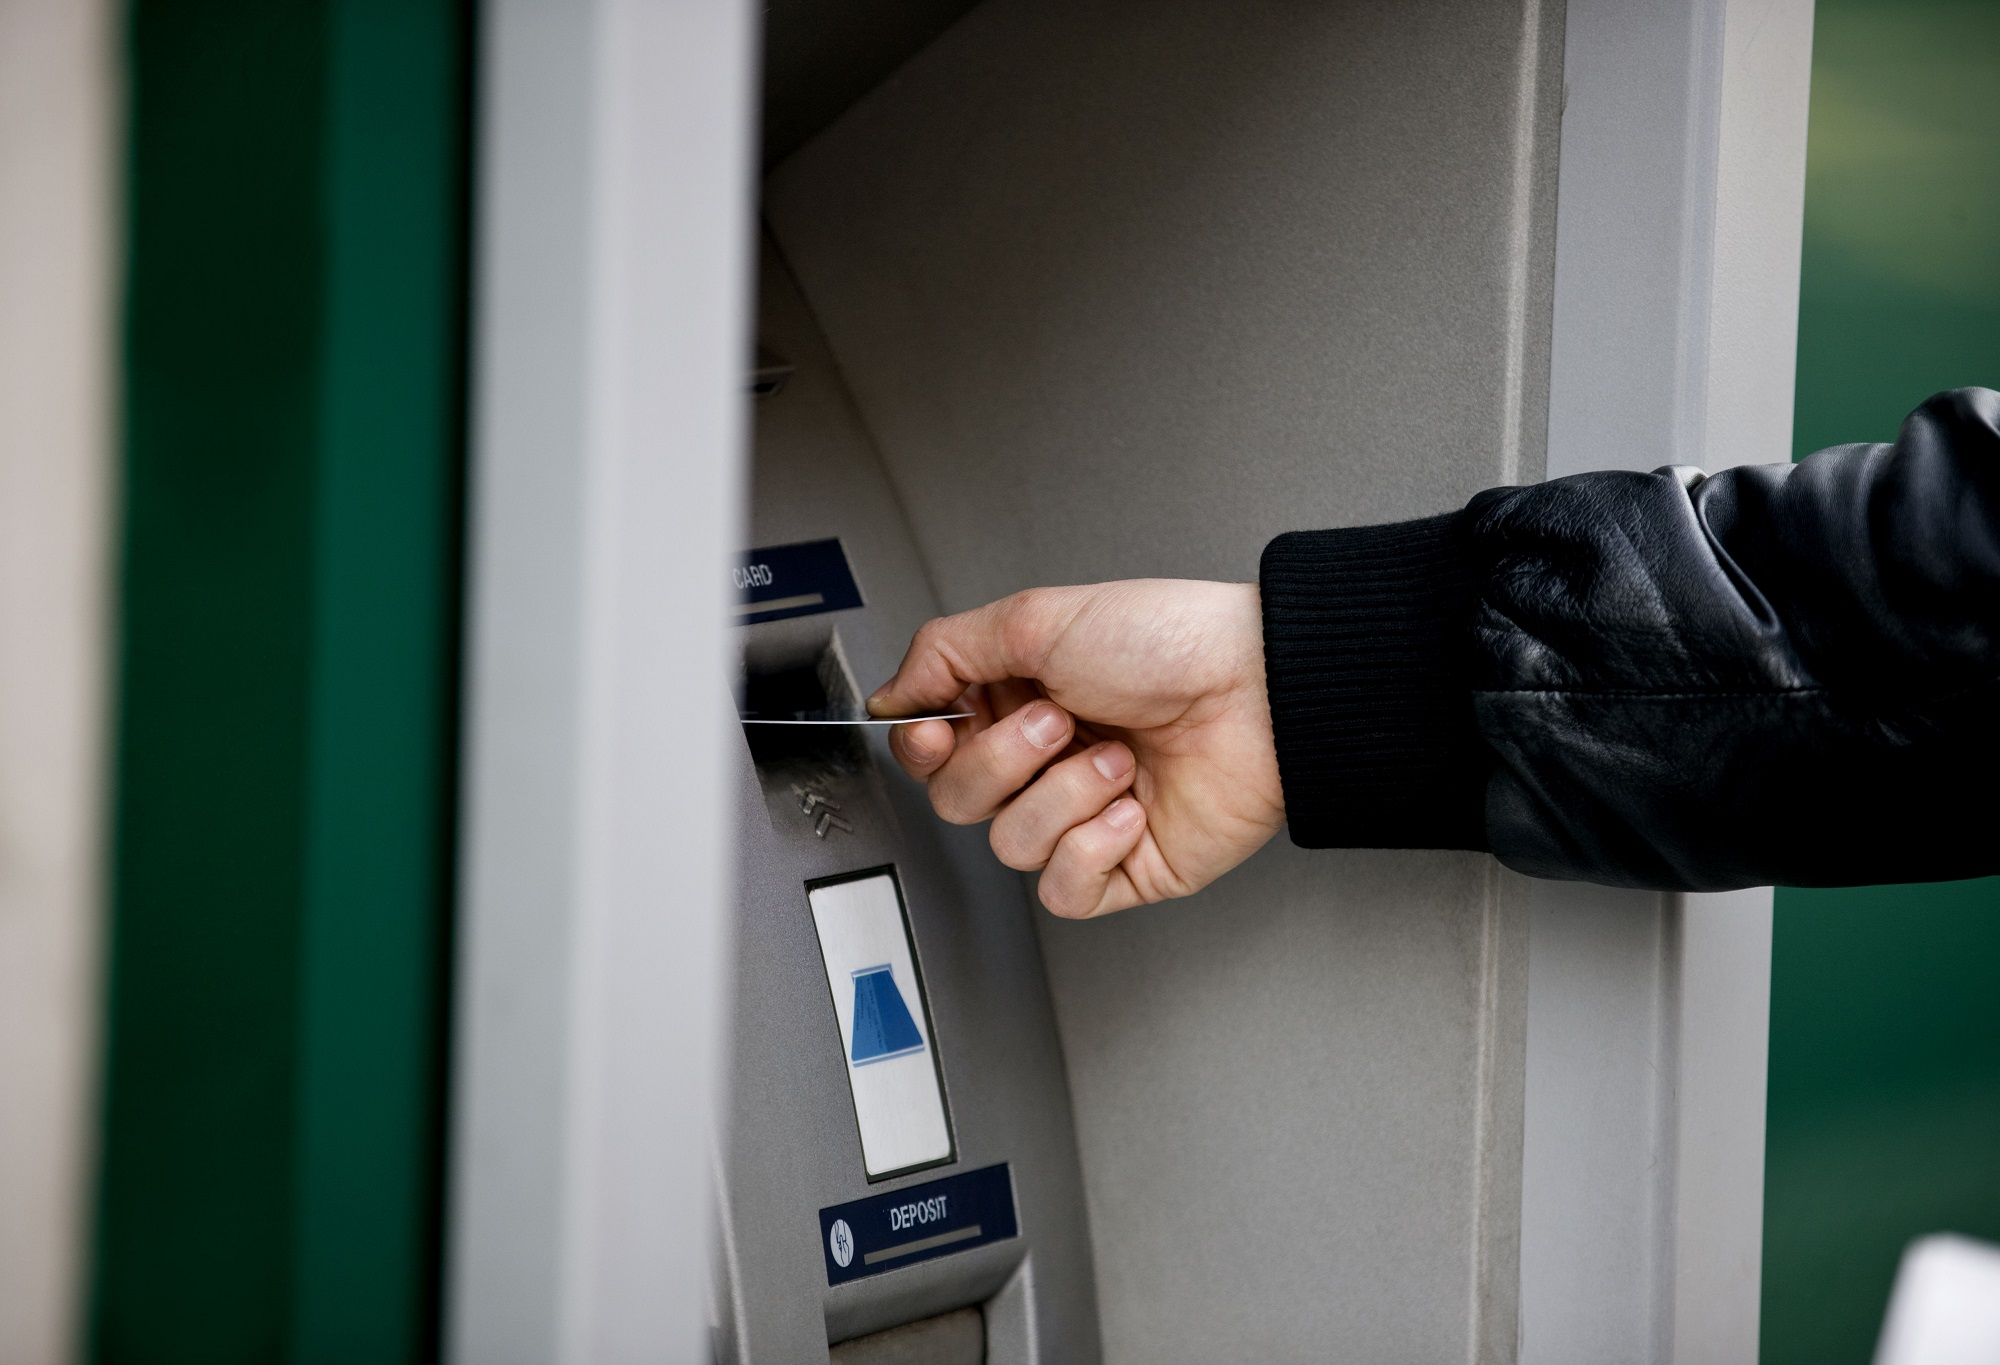 Worldwide 45m Atm Cyber Heist Highlights Vulnerabilities